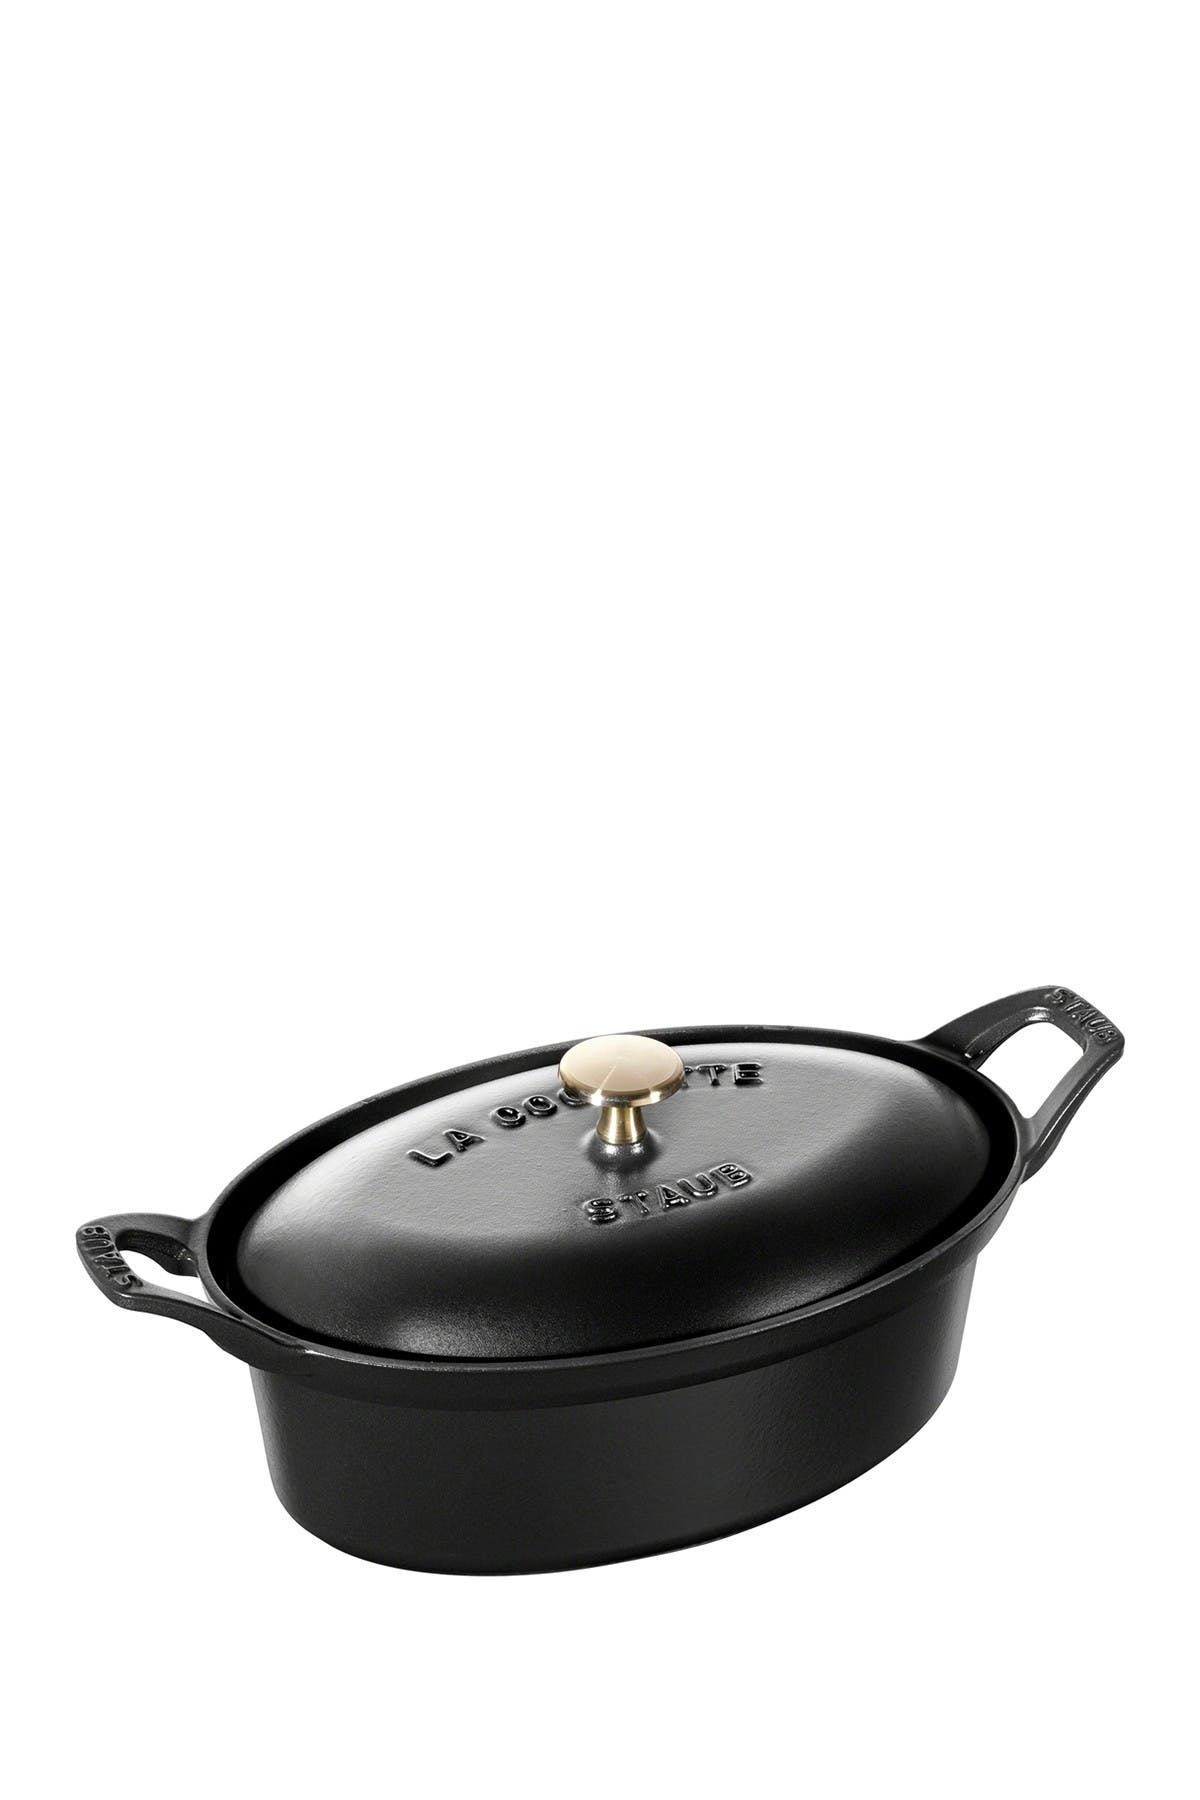 Image of Staub Cast Iron 1.9-qt Oval Terrine - Black